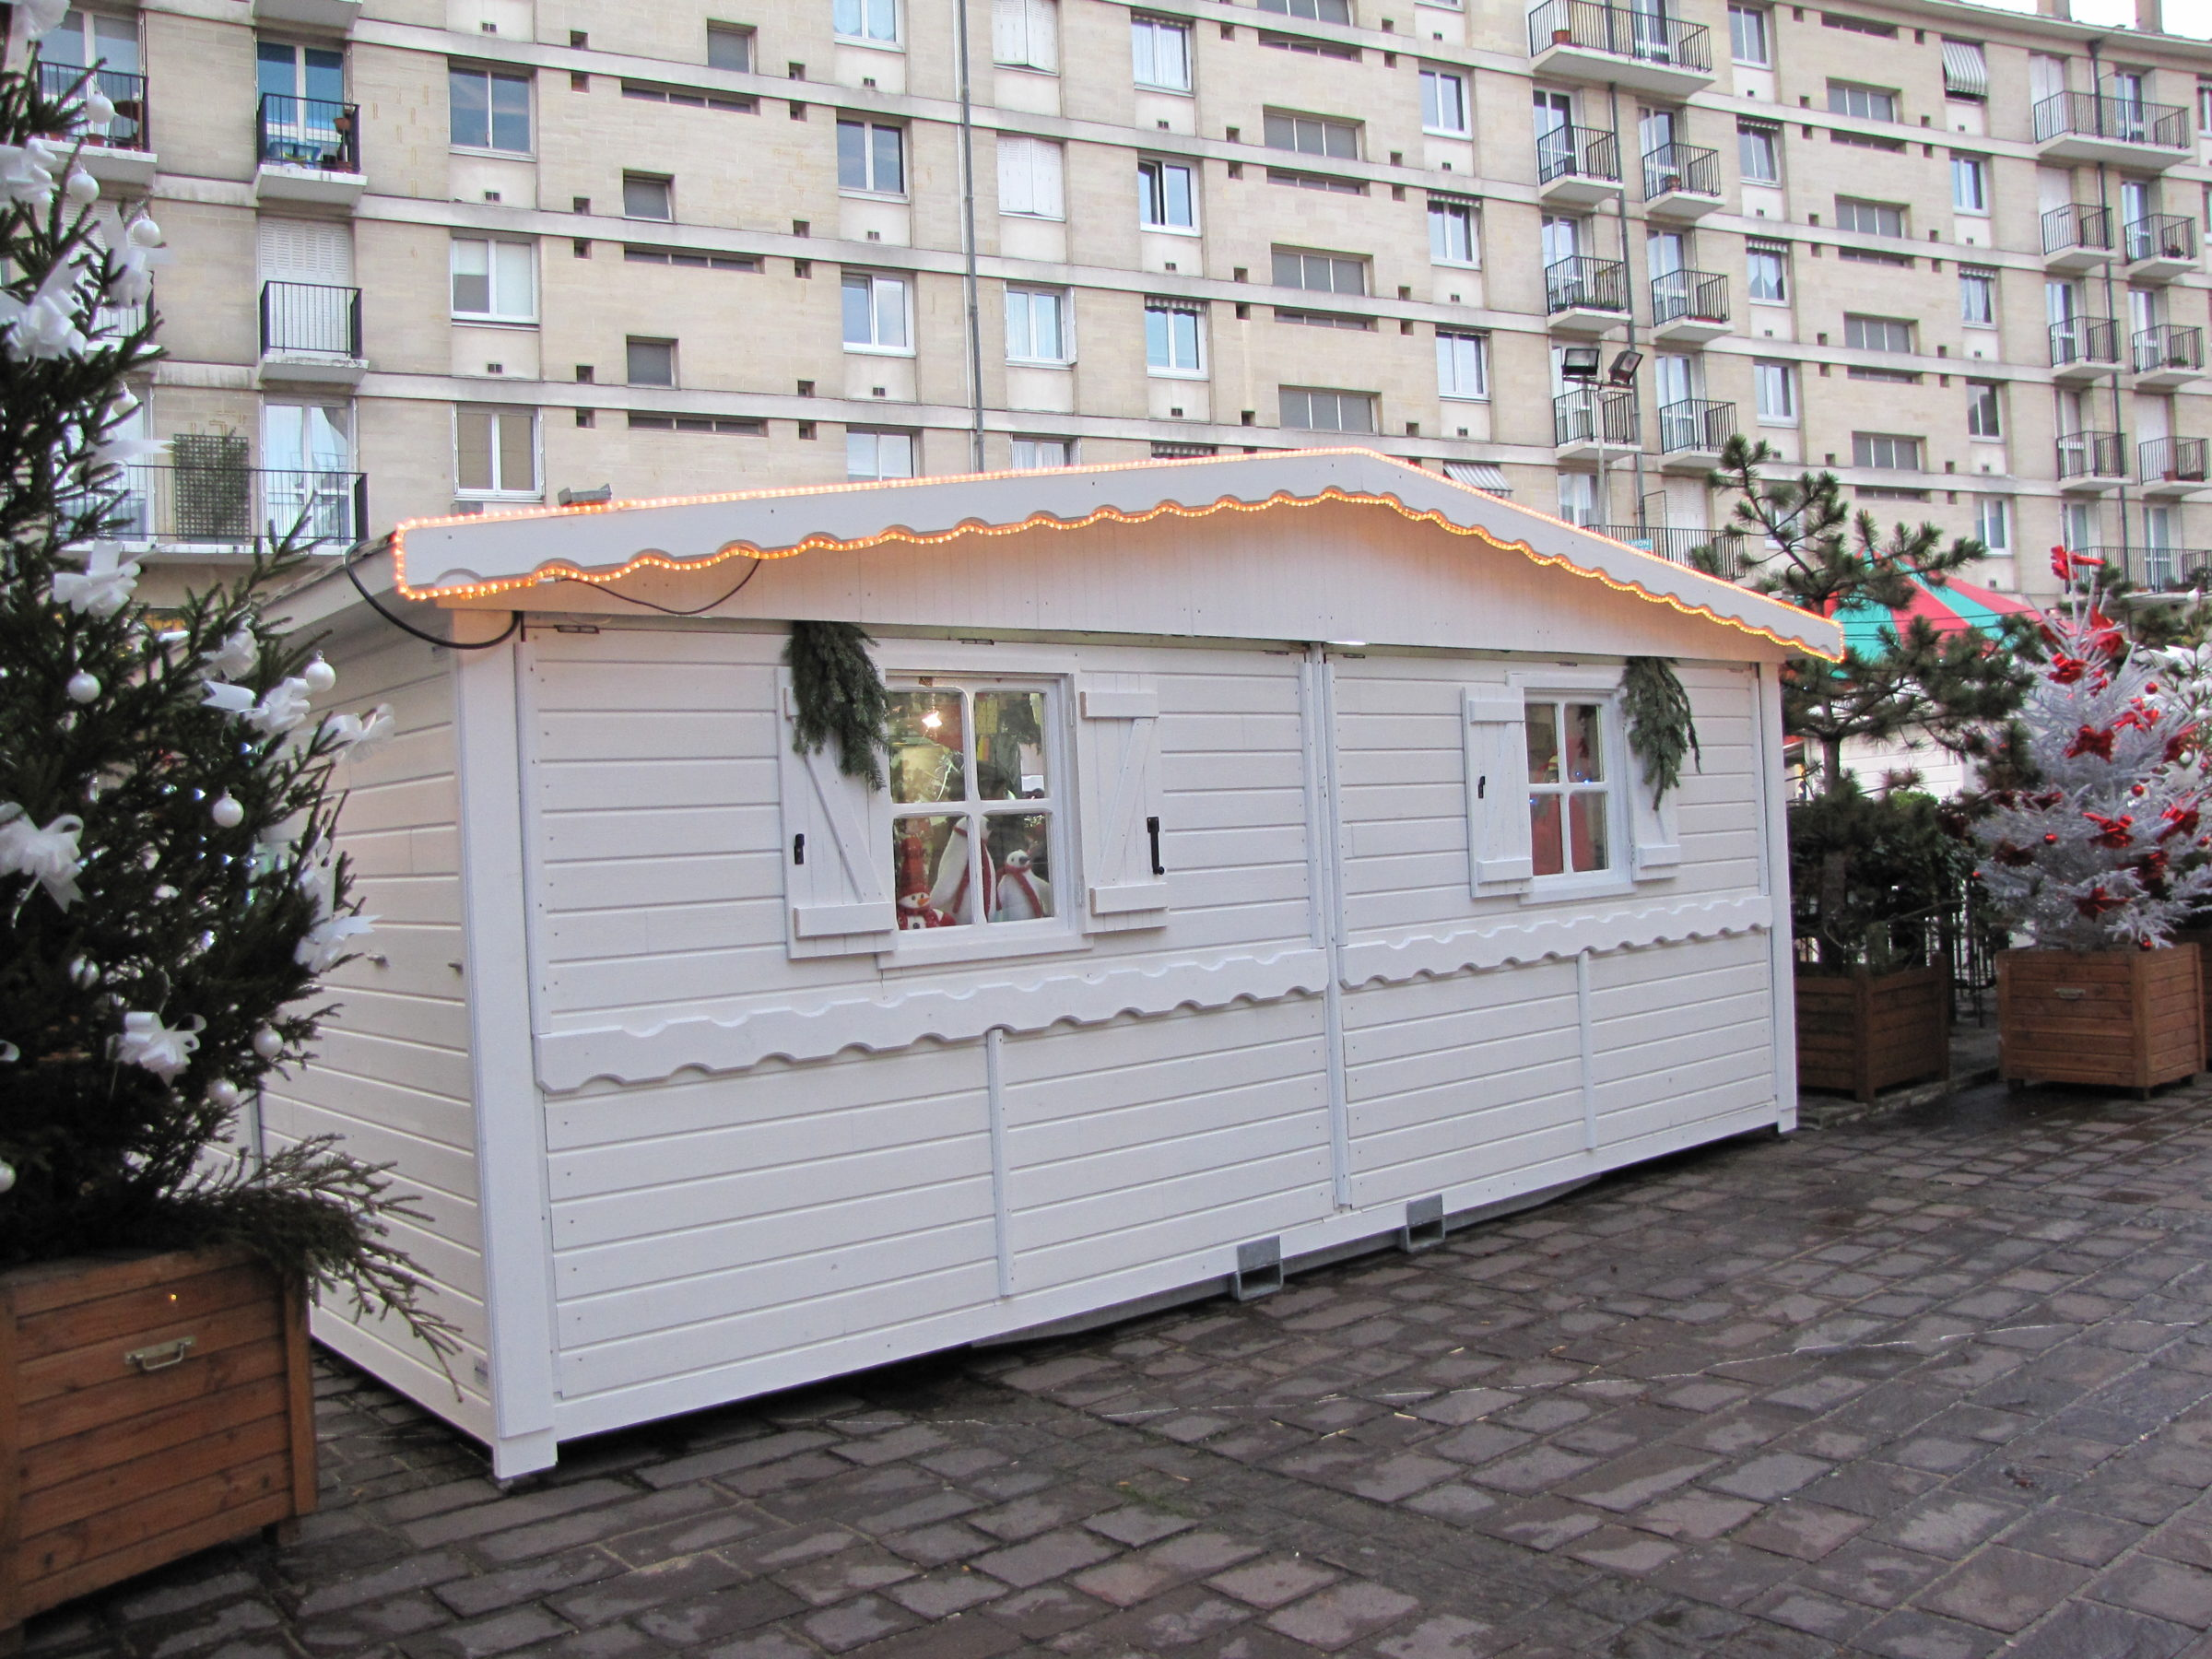 Chalet-pliable blanc de 6m - location vente marché de noel kiosque point d information billeterie buvette